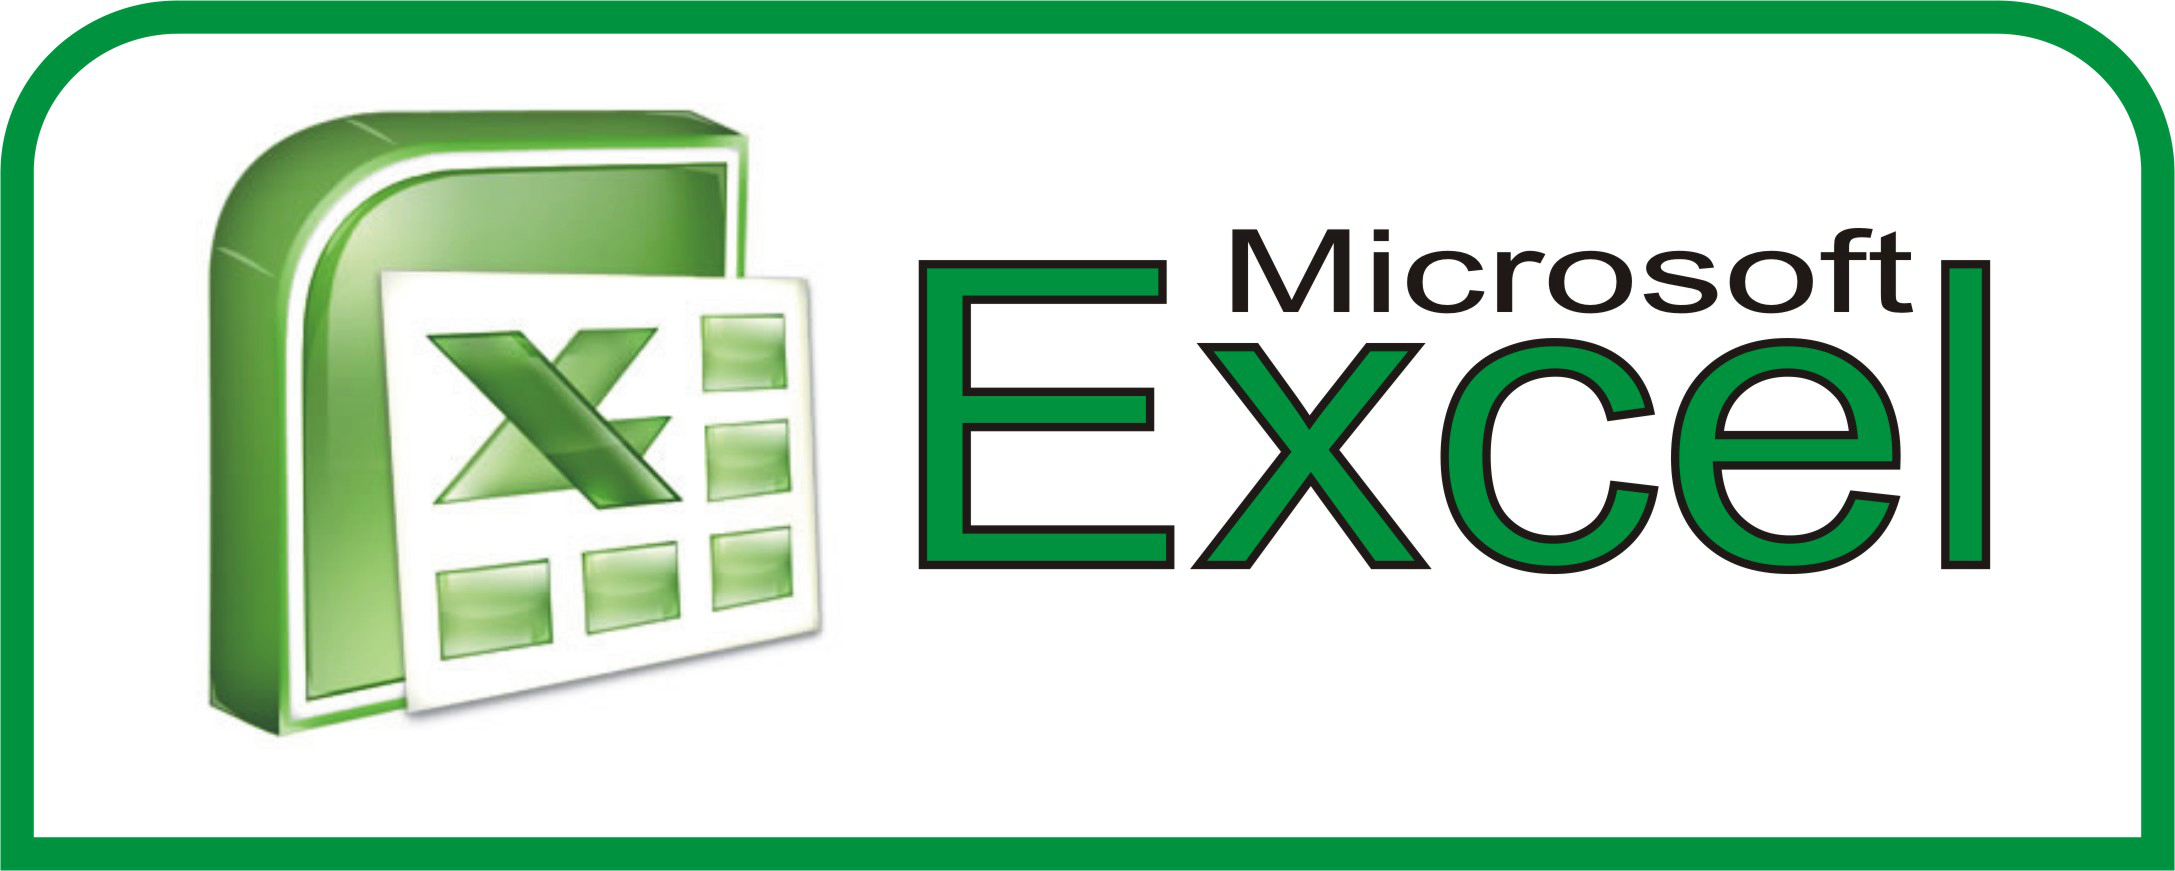 Ediblewildsus  Ravishing  Excel Shortcuts You Probably Didnt Know About  Techdissected With Great Copy Pdf Into Excel Besides Powerpivot Excel  Furthermore Translate Excel With Amazing Proveit Test Answers Excel  Also Meal Planner Excel In Addition Financial Analysis Excel And Name Ranges In Excel As Well As Complex Formula In Excel Additionally Is Excel High School Legit From Techdissectedcom With Ediblewildsus  Great  Excel Shortcuts You Probably Didnt Know About  Techdissected With Amazing Copy Pdf Into Excel Besides Powerpivot Excel  Furthermore Translate Excel And Ravishing Proveit Test Answers Excel  Also Meal Planner Excel In Addition Financial Analysis Excel From Techdissectedcom